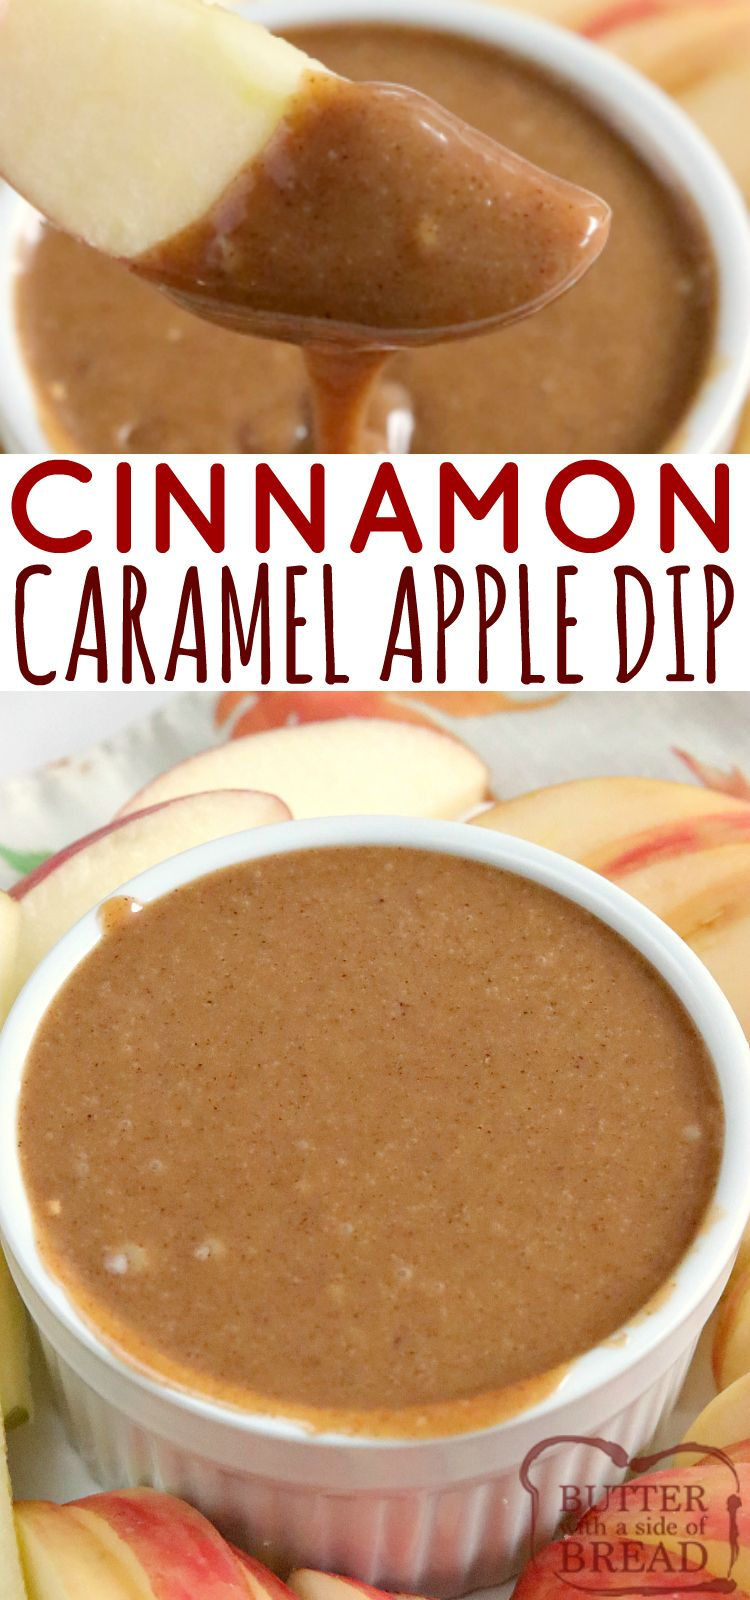 Cinnamon Caramel Apple Dip Is Made With Only 3 Ingredients Sweetened Condensed Milk Butterscotch Chips And Lots O Caramel Apple Dip Cinnamon Caramel Recipes